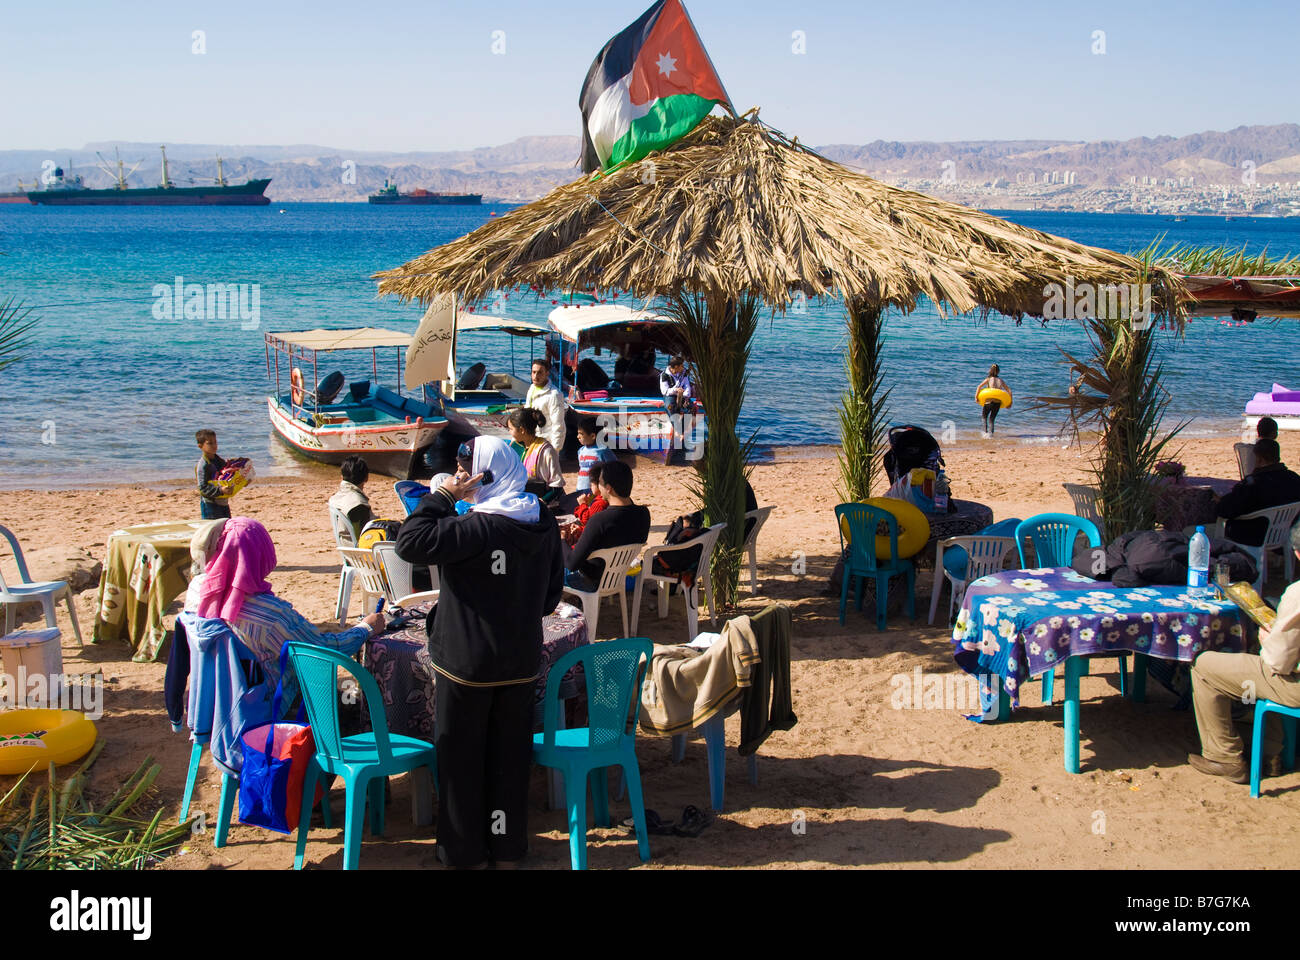 Aqaba beach in Jordan - Stock Image